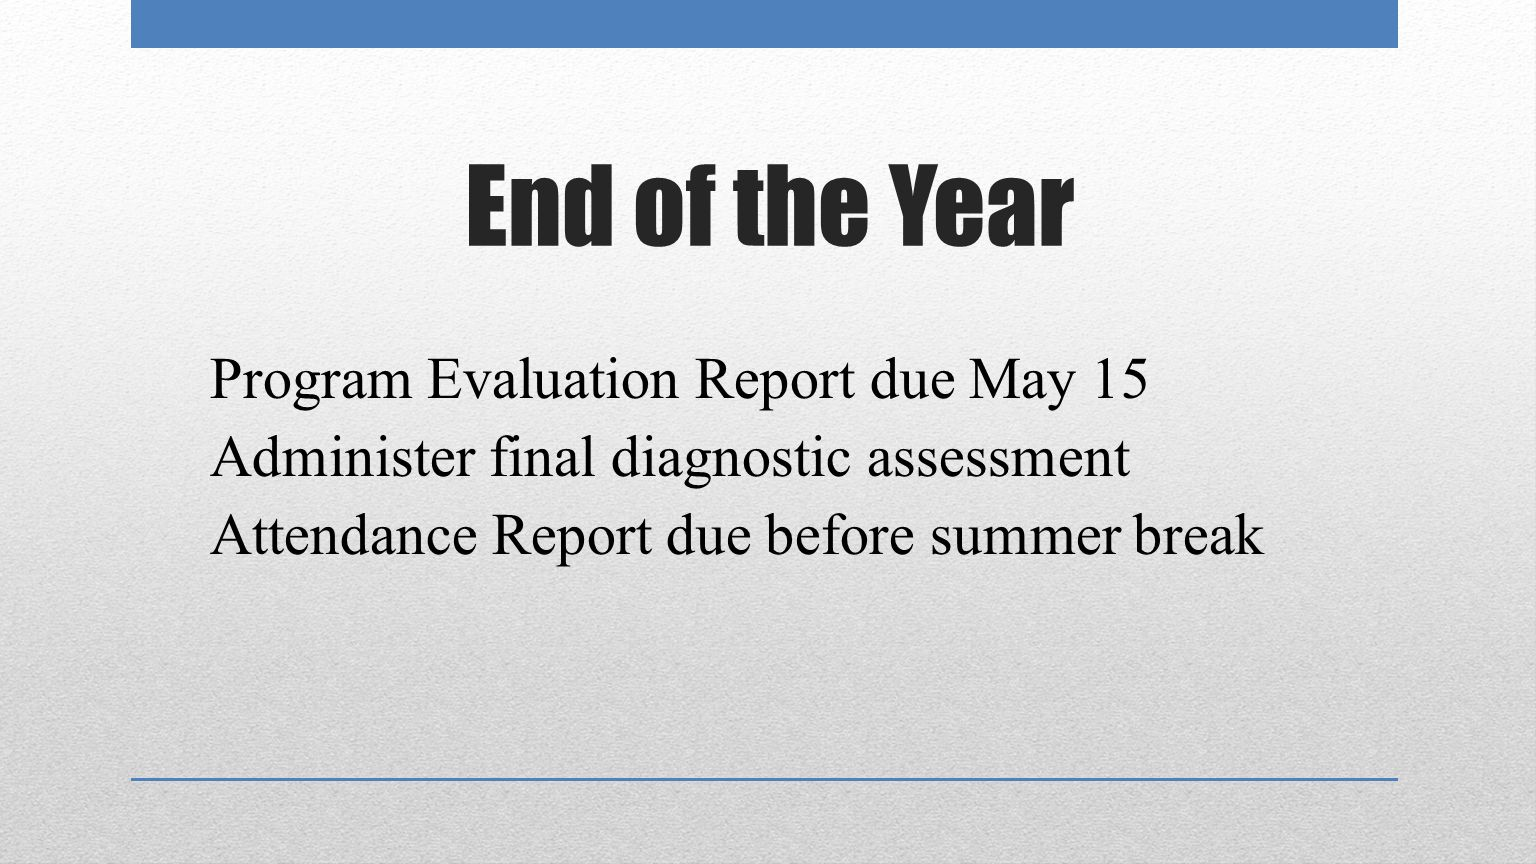 End of the Year Program Evaluation Report due May 15 Administer final diagnostic assessment Attendance Report due before summer break